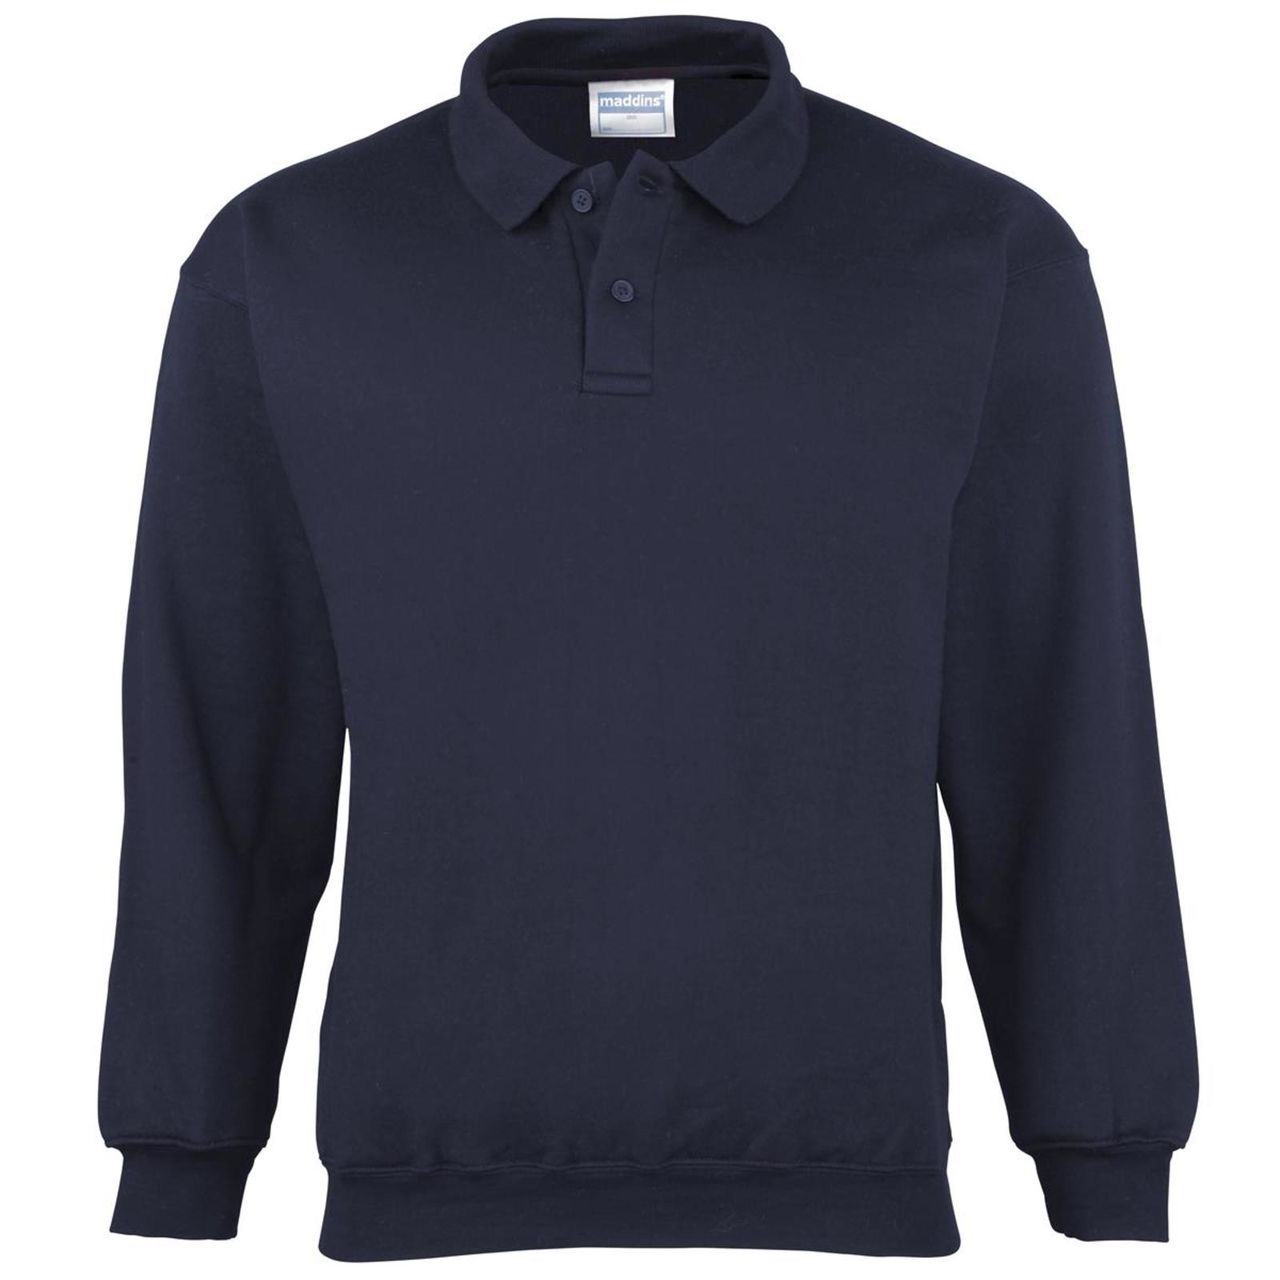 Maddins Coloursure Polo Long Sleeve T-Shirt Mens Plaquet Collared ...